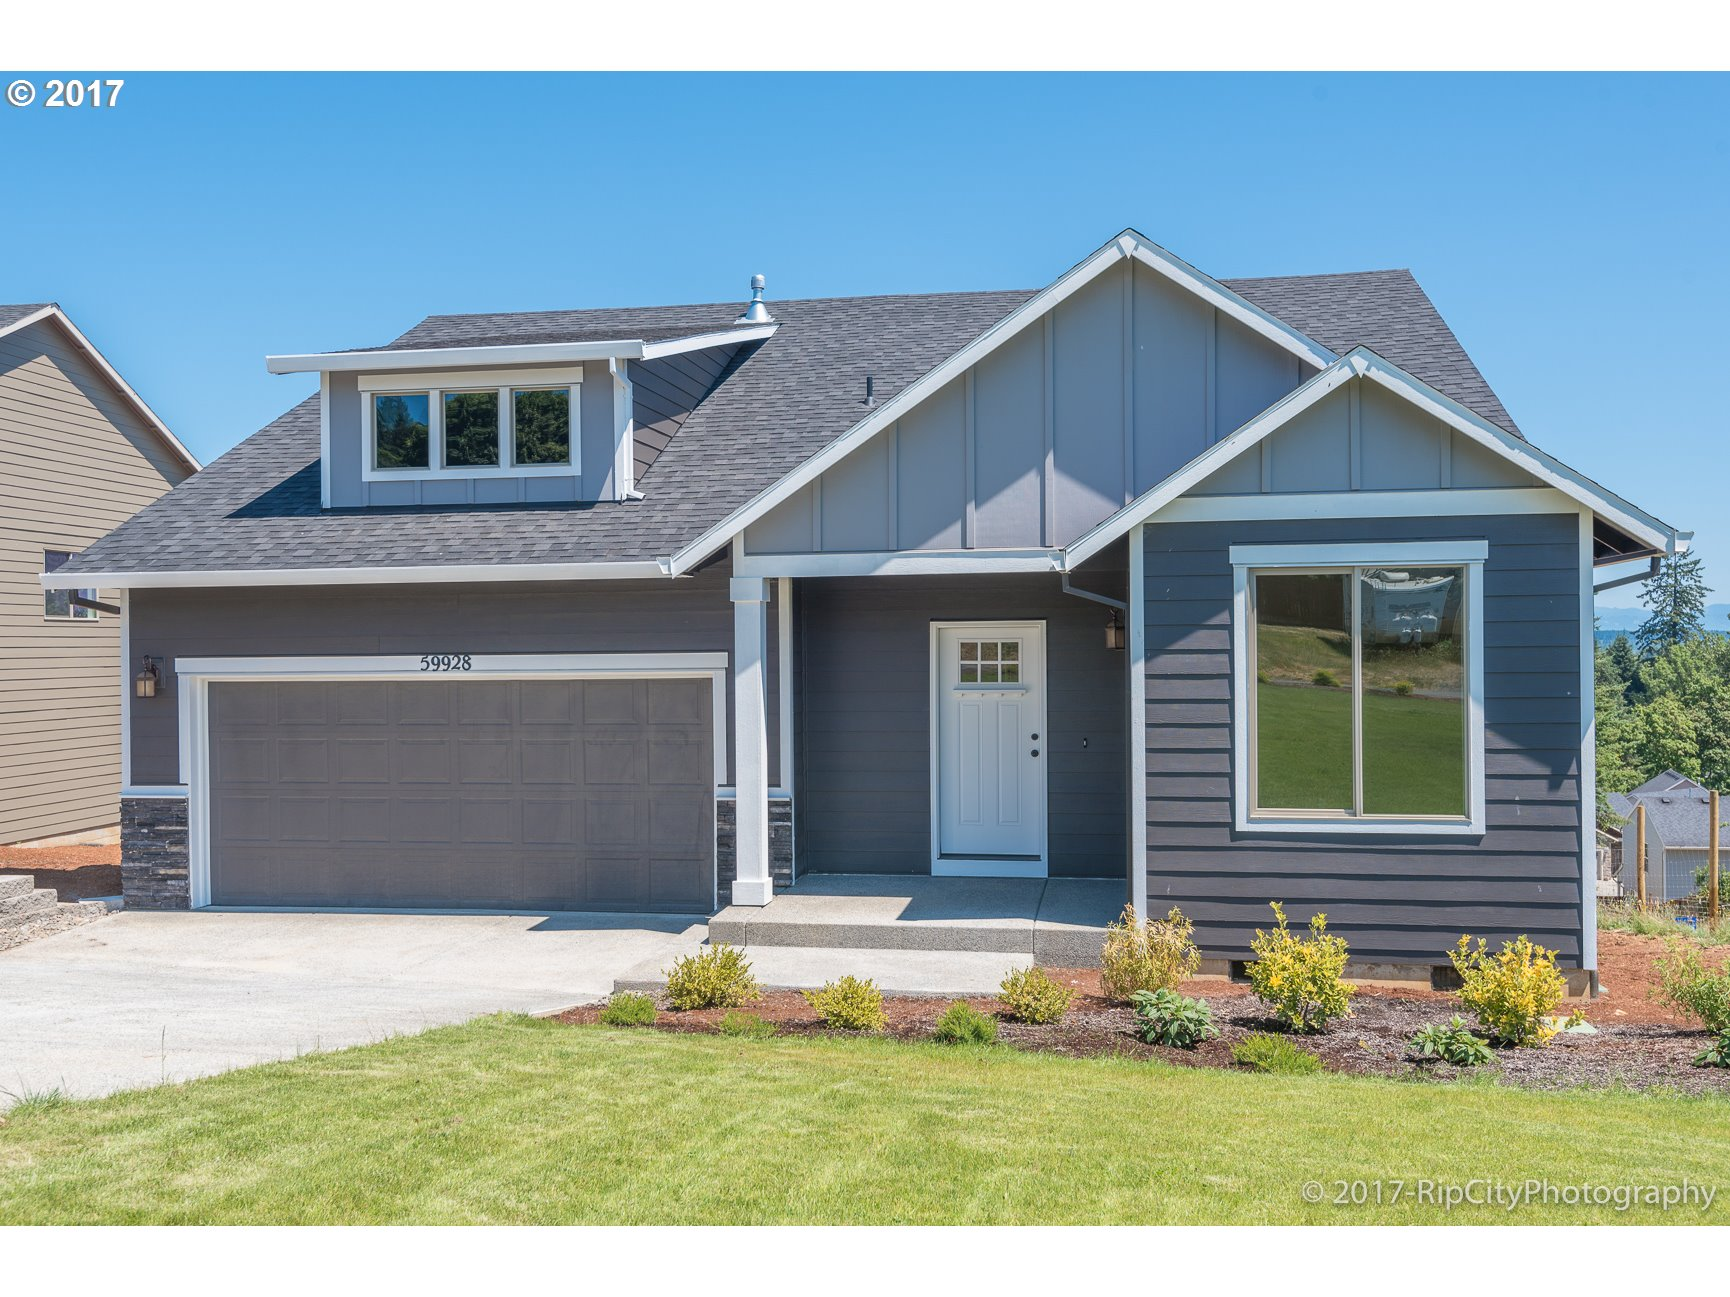 59928 WINDY RIDGE DR, St. Helens, OR 97051